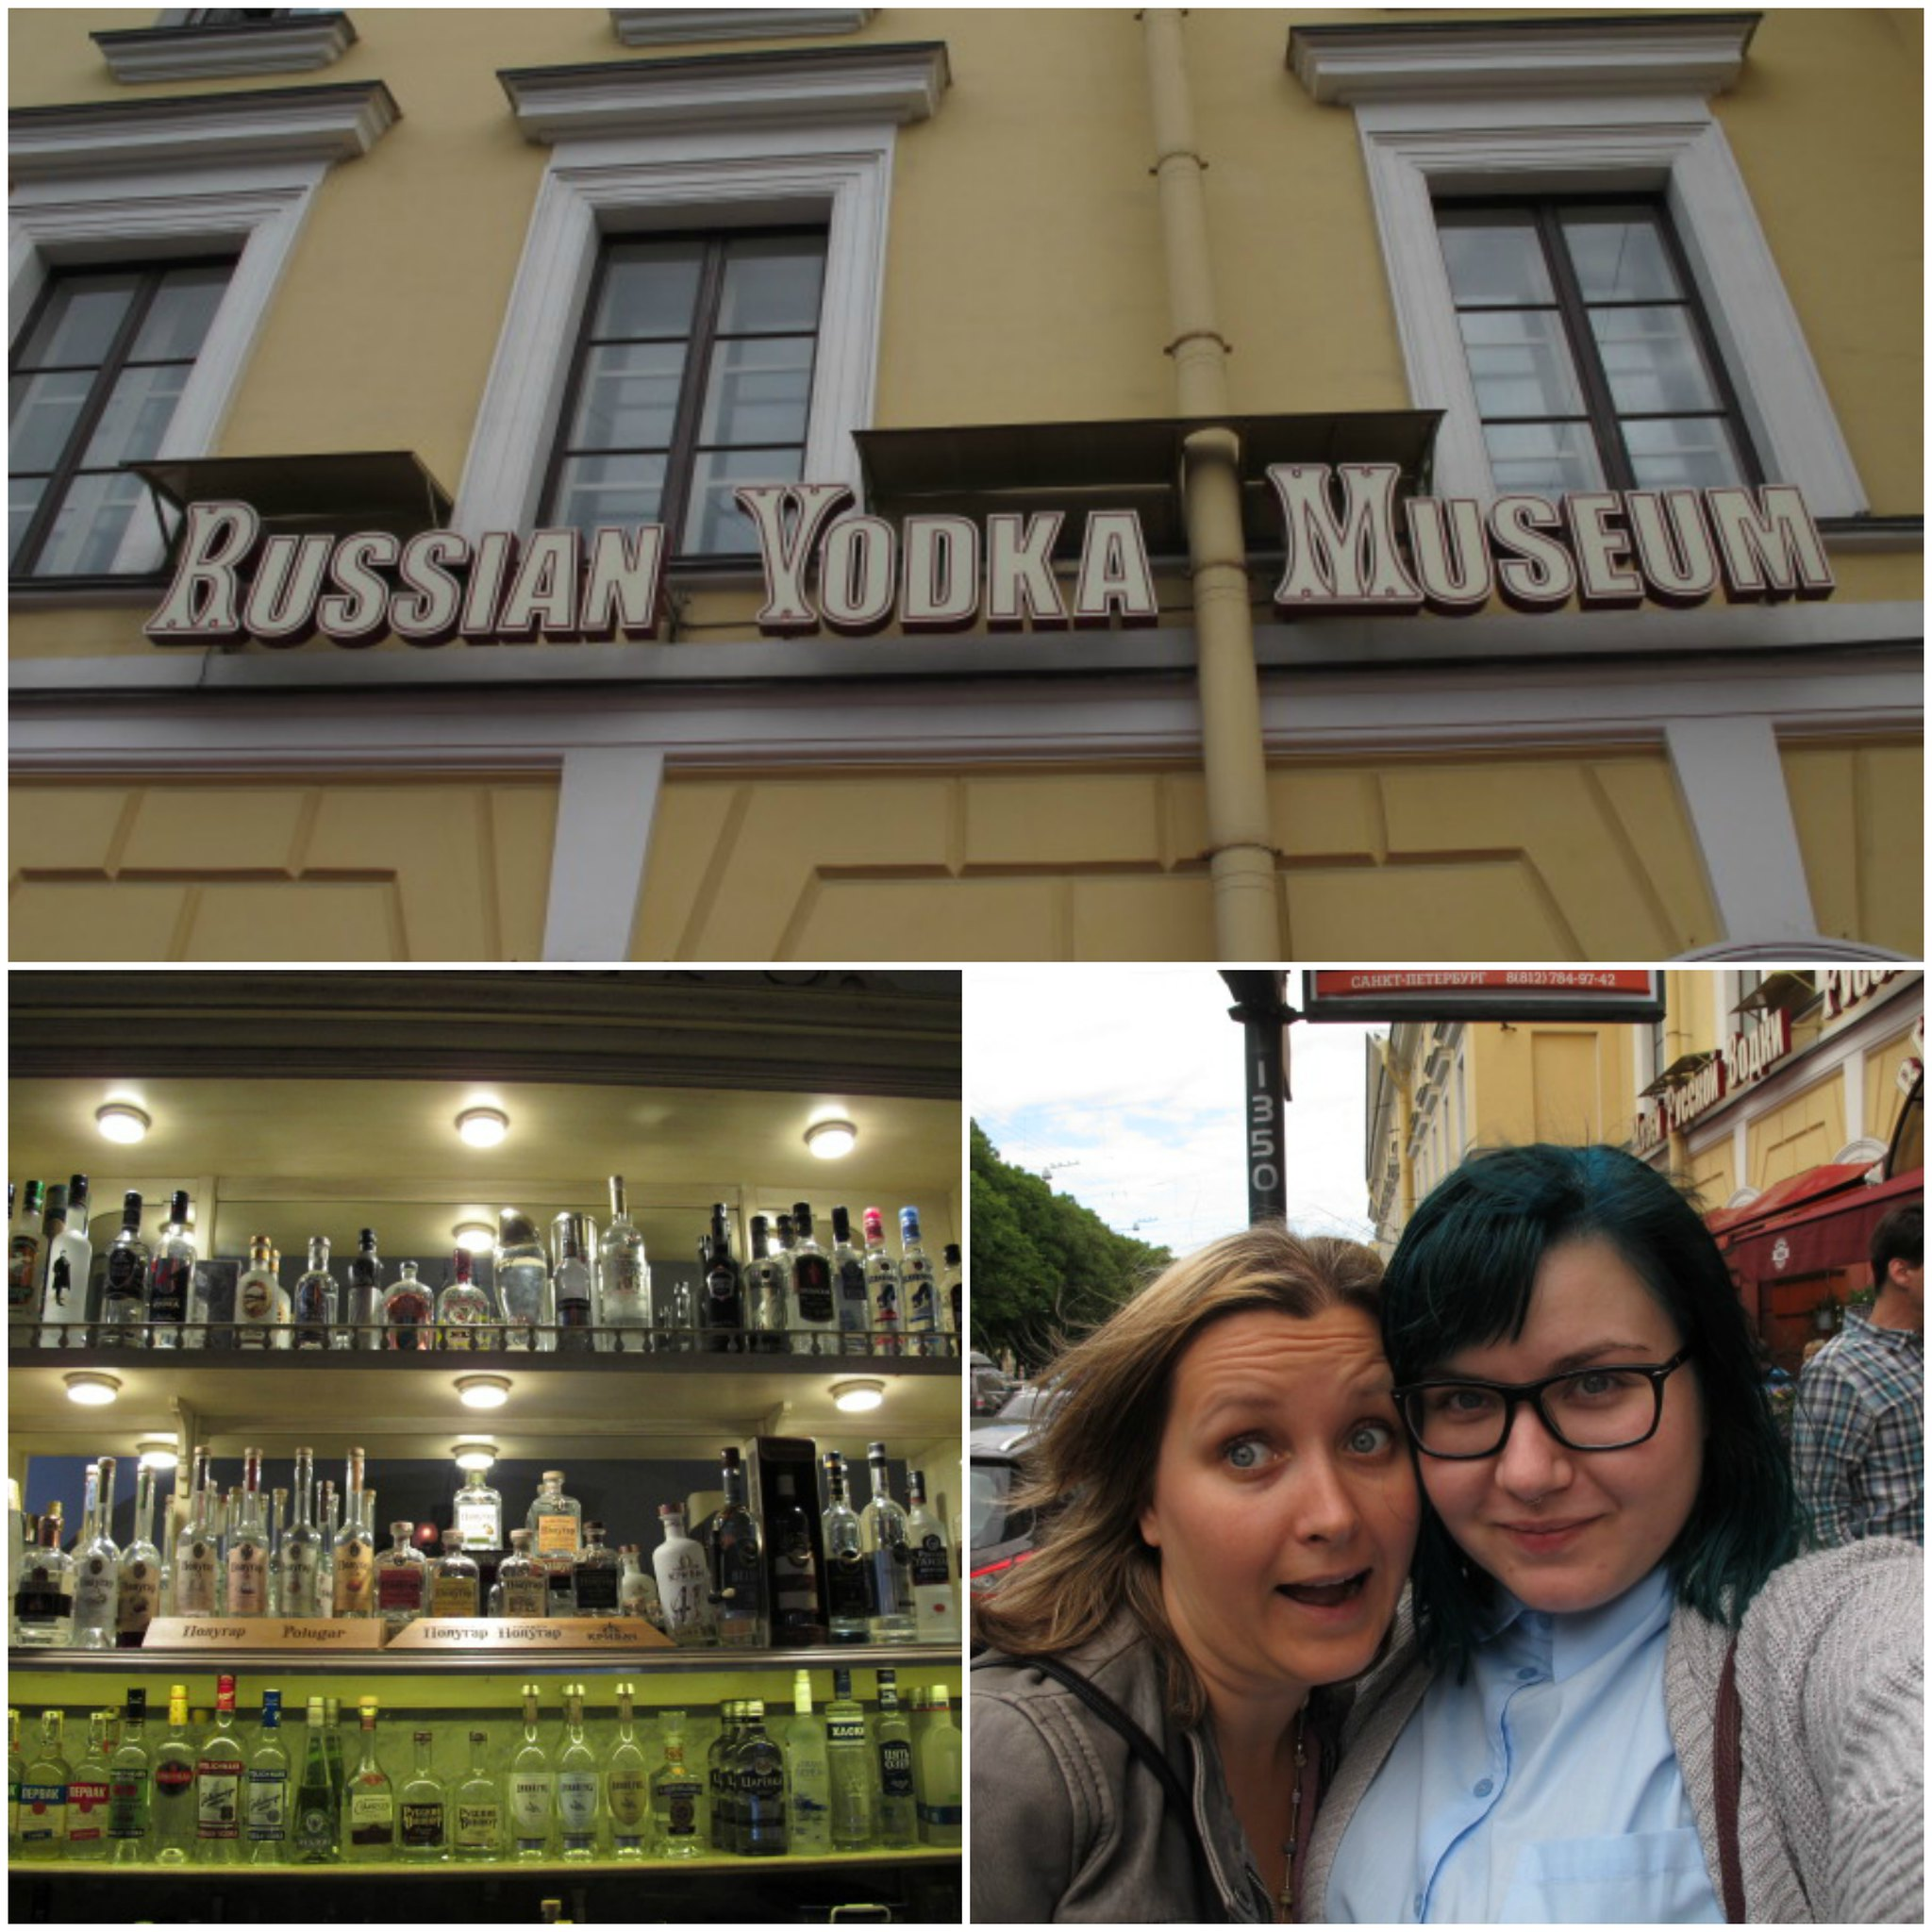 Russian Vodka Museum